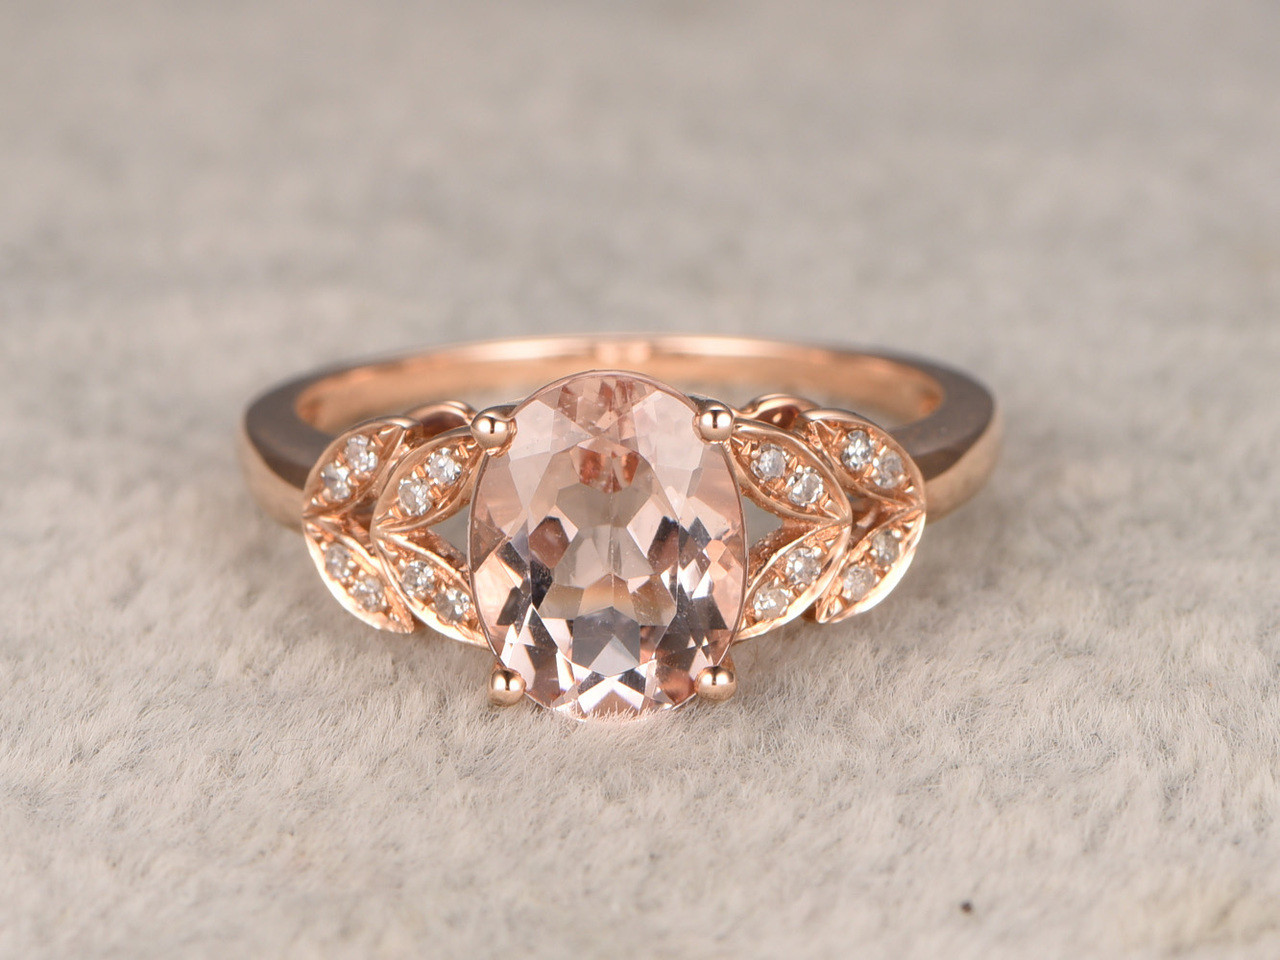 6x8mm Oval Morganite Engagement Ring Diamond Wedding Ring 14k Rose